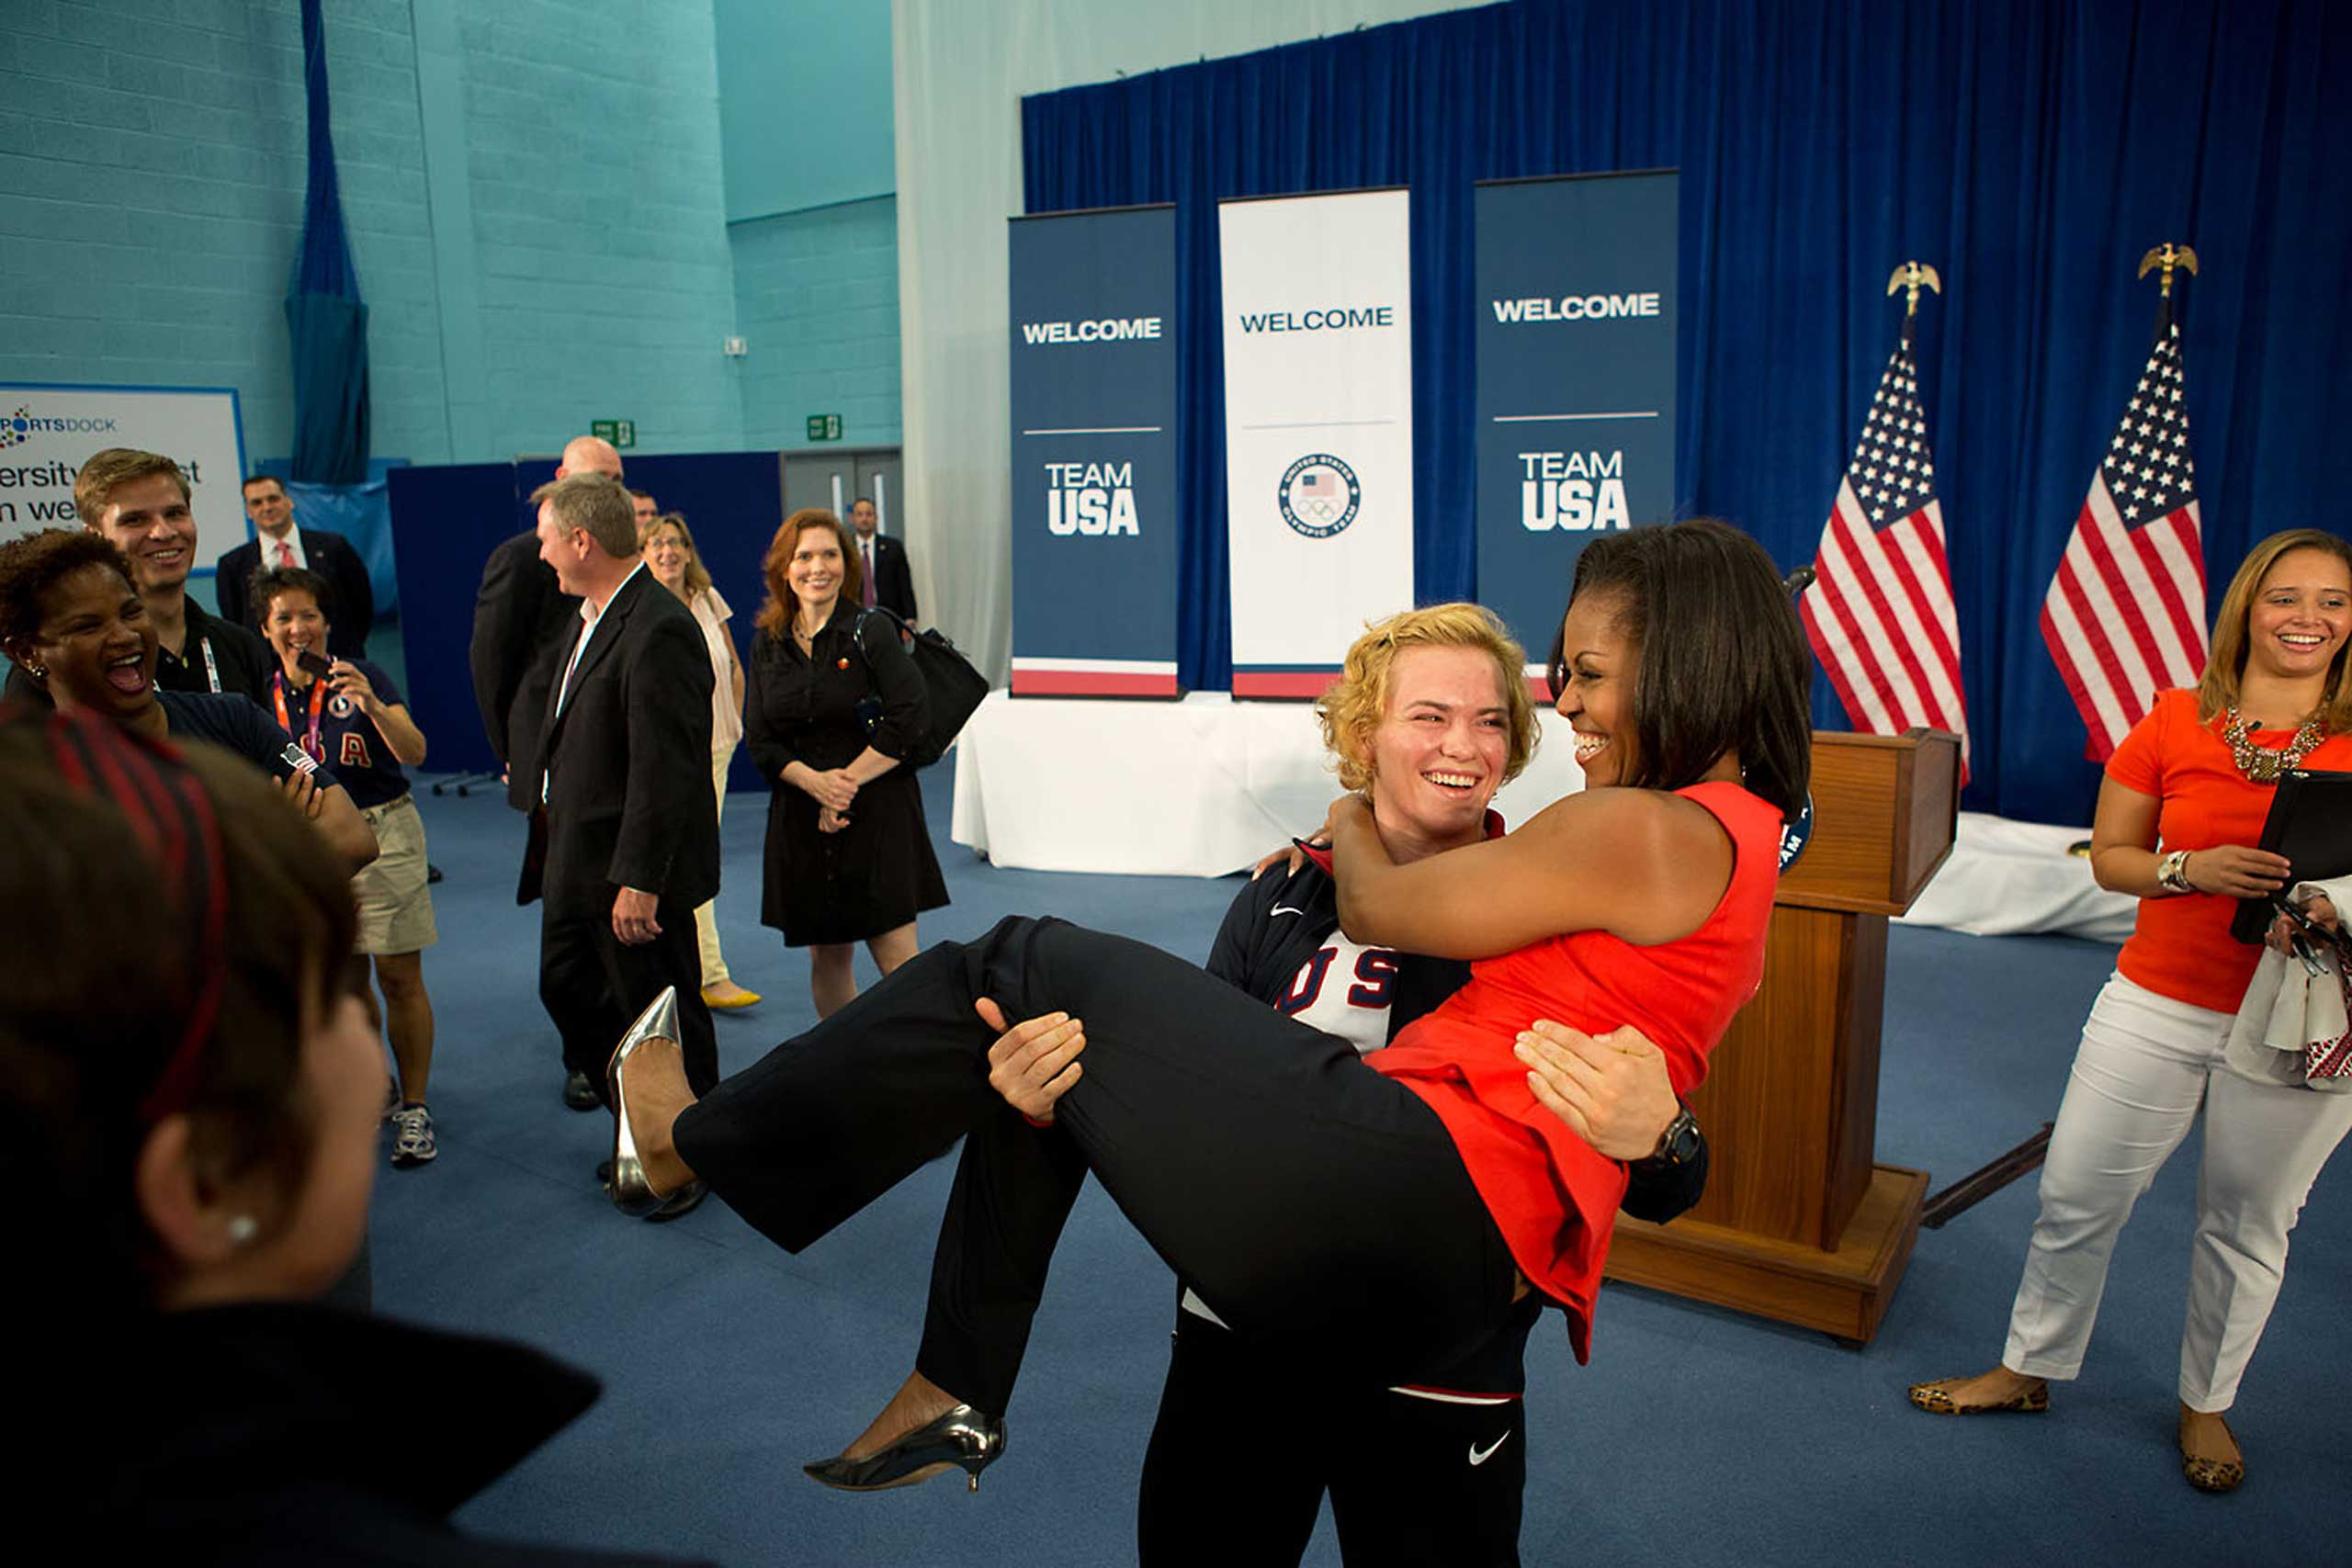 U.S. Olympic wrestler Elena Pirozhkova picks up the First Lady during a greet with Team USA Olympic athletes competing in the 2012 Summer Olympic Games, at the U.S. Olympic Training Facility at the University of East London in London, England, July 27, 2012.